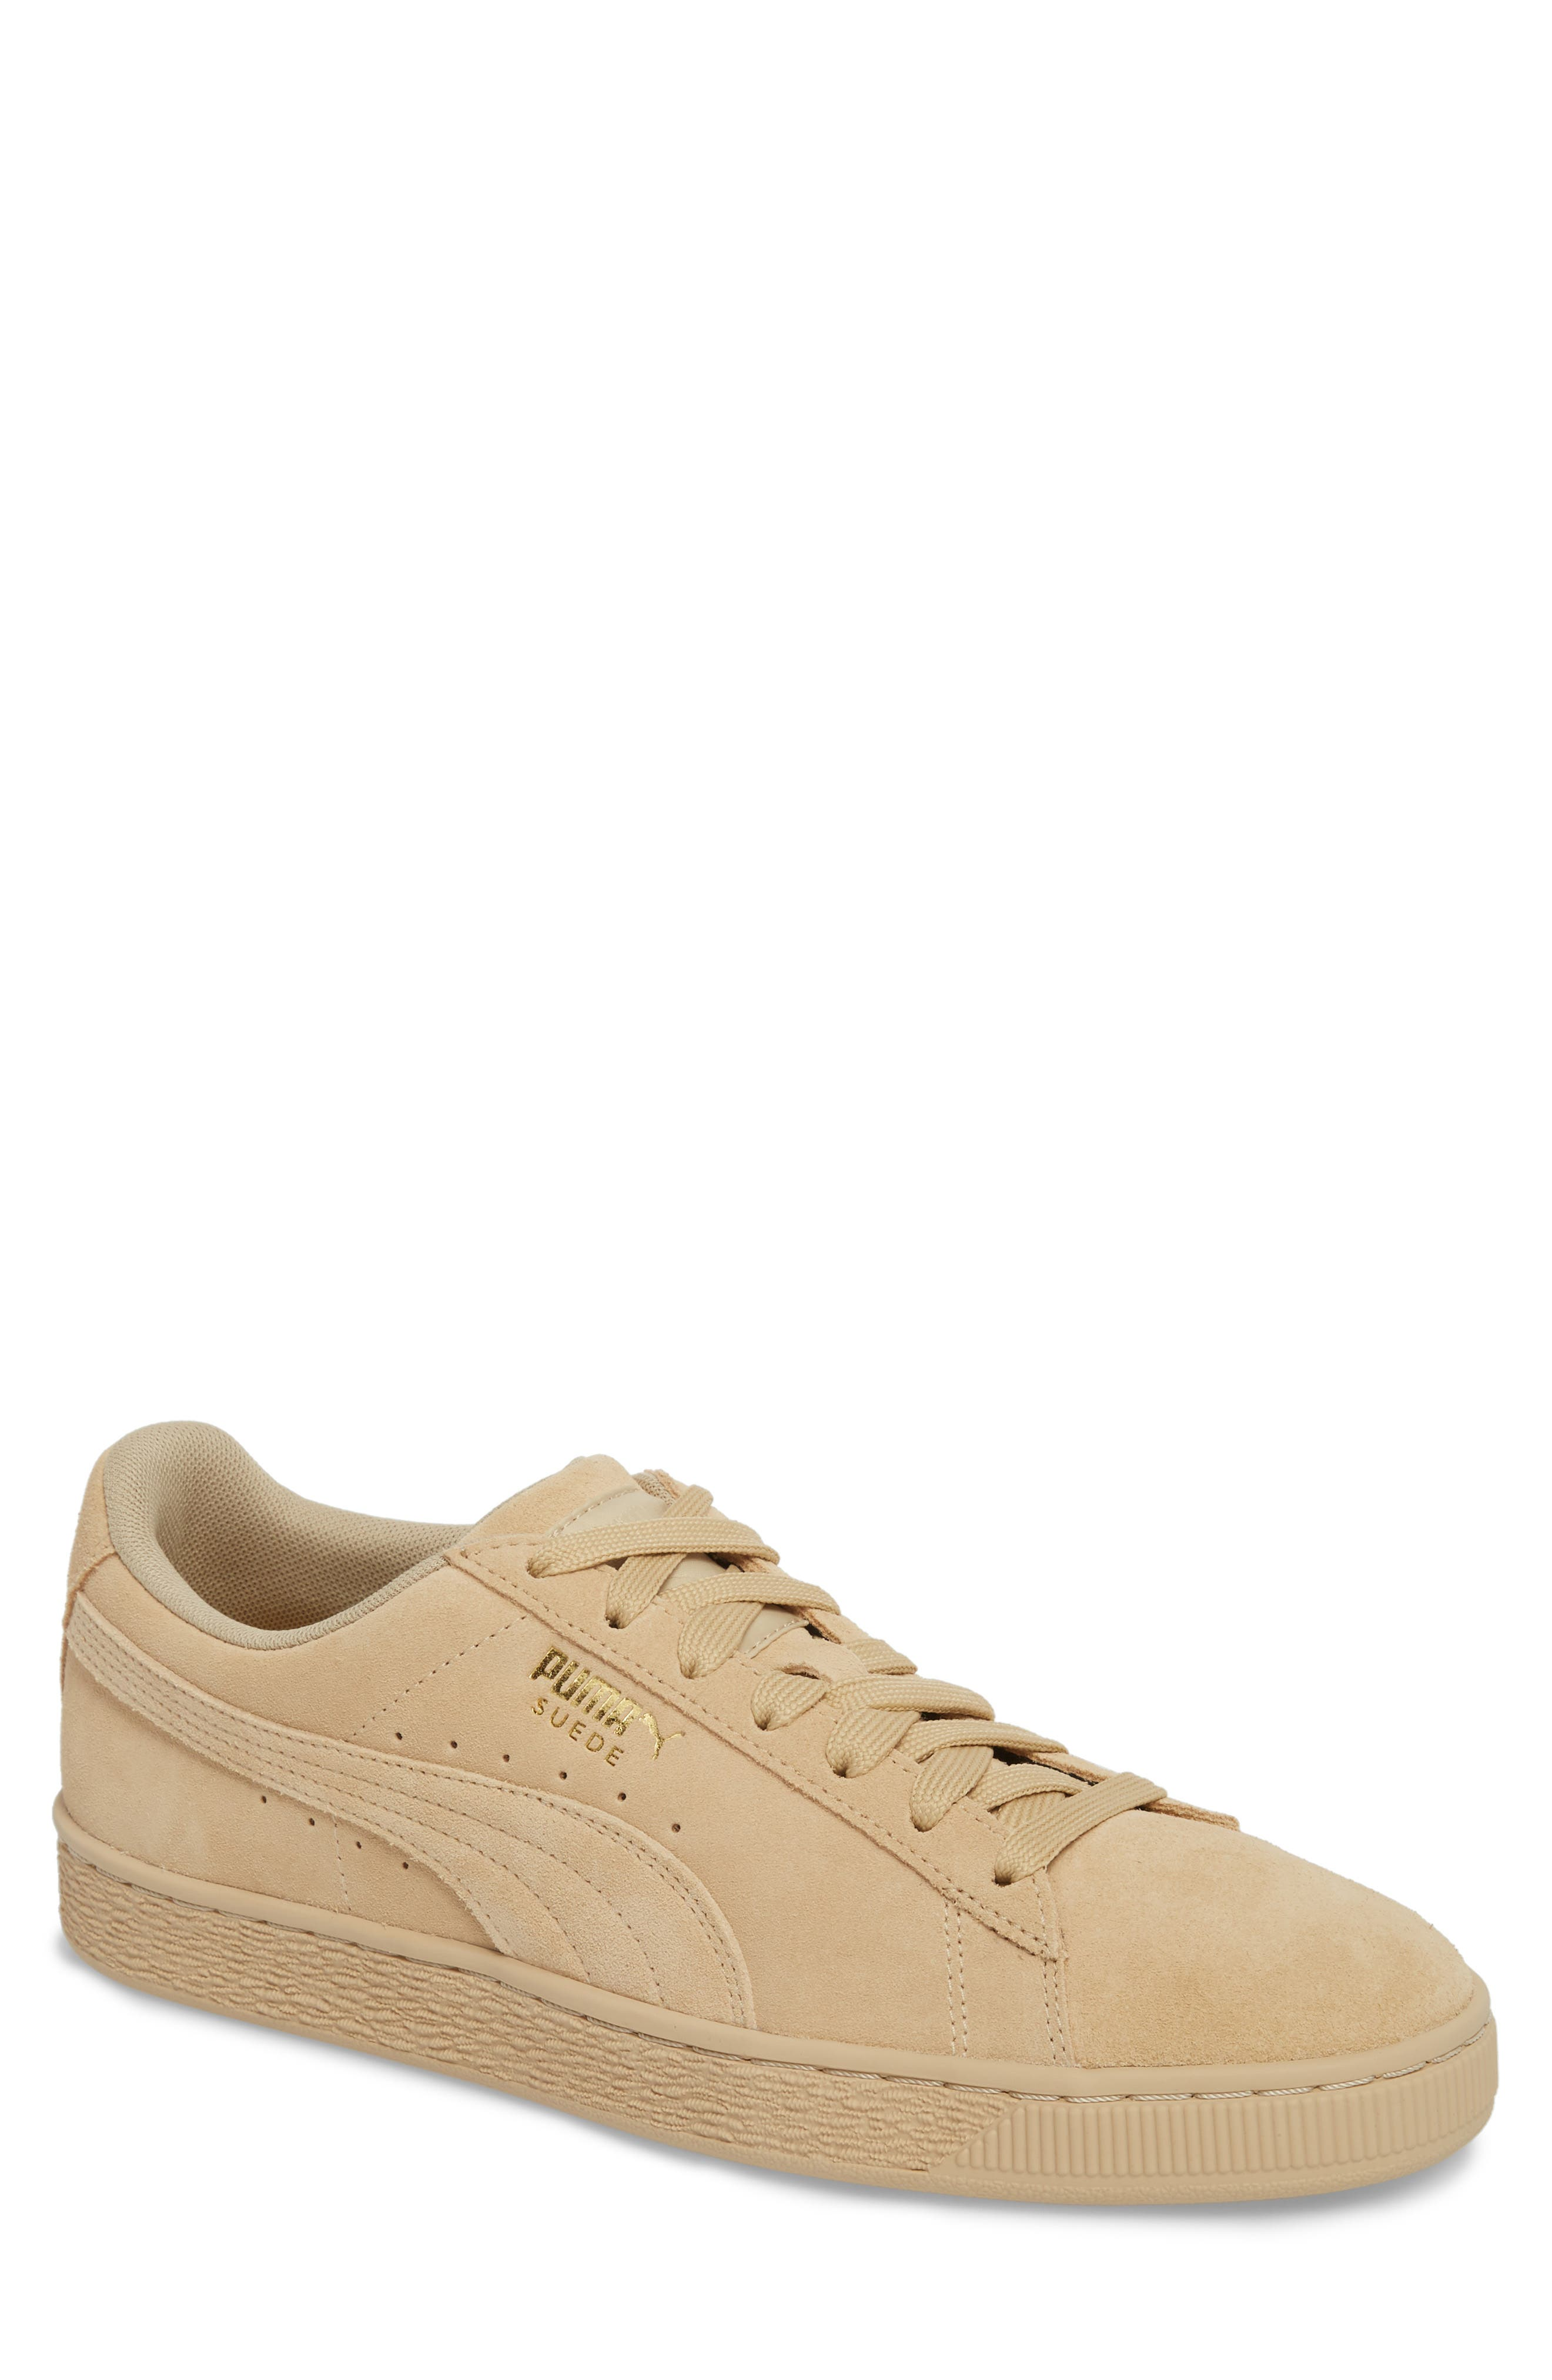 Suede Classic Tonal Sneaker,                             Main thumbnail 1, color,                             Pebble Suede